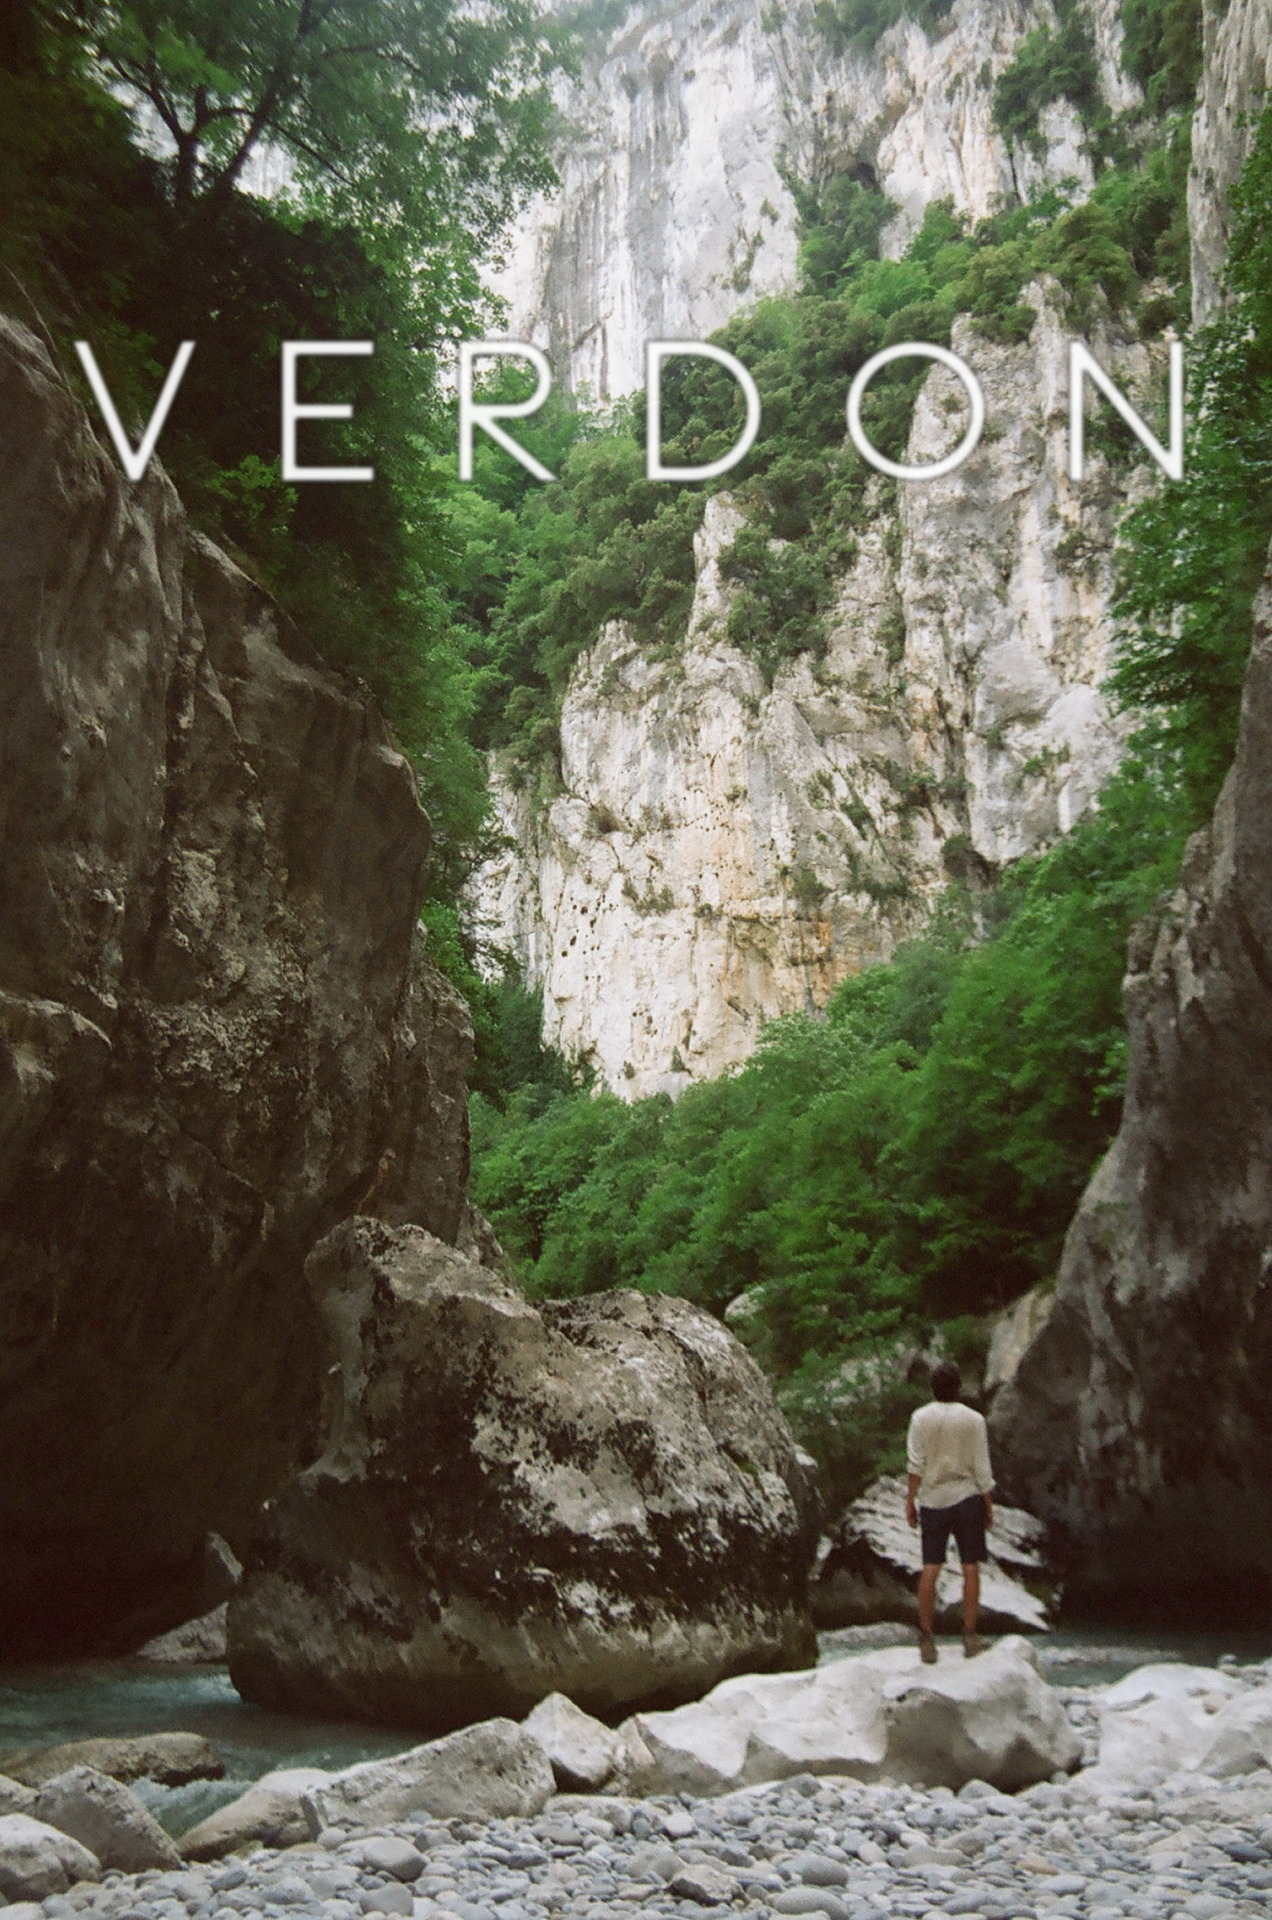 I arrived to the last checkpoint of my trip, the valleys of Verdon, the biggest canyons in Europe. Some more amazing shots coming!